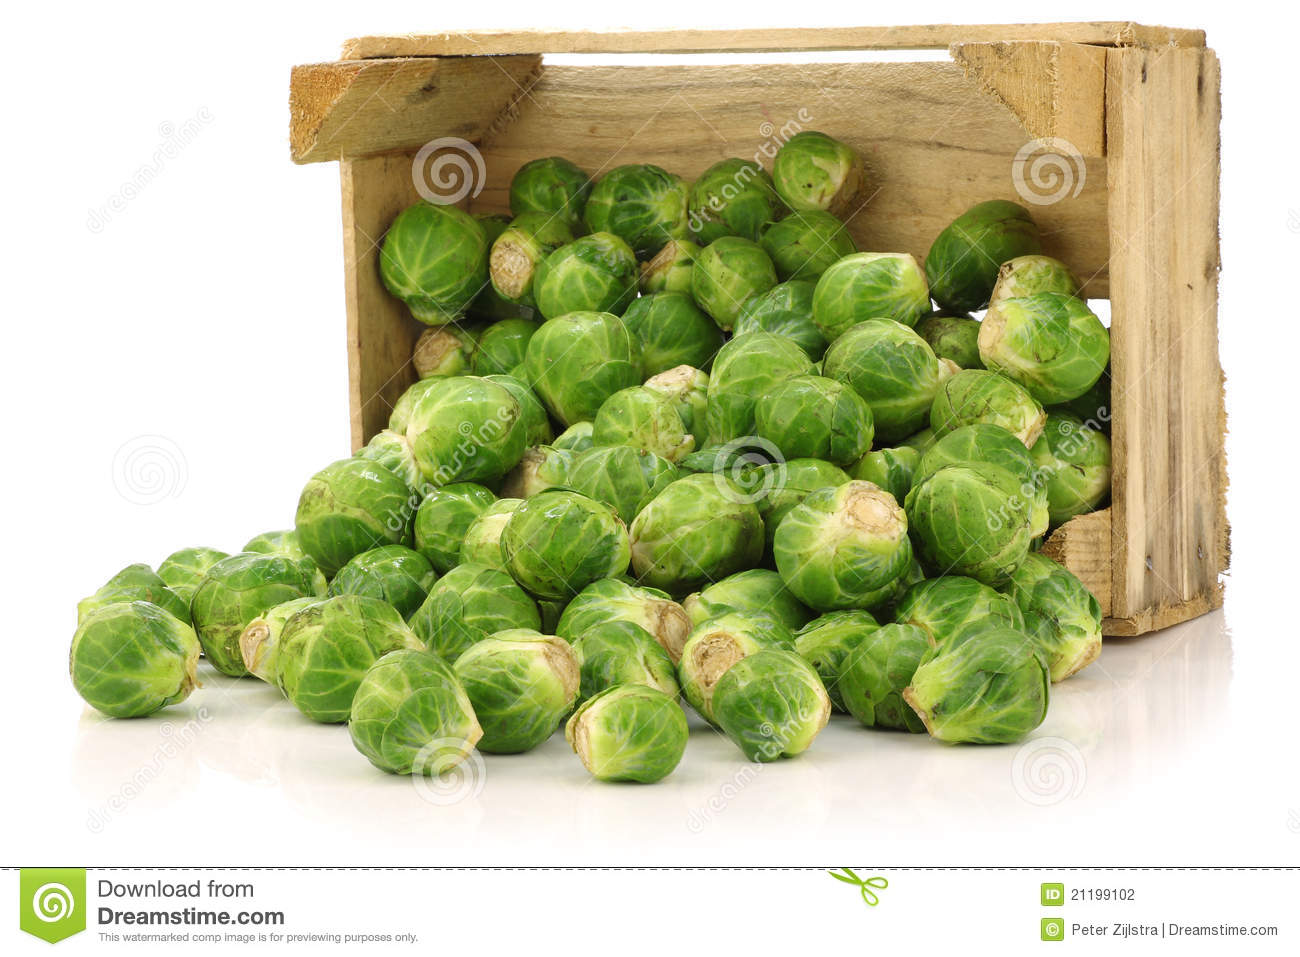 Freshly harvested brussel sprouts